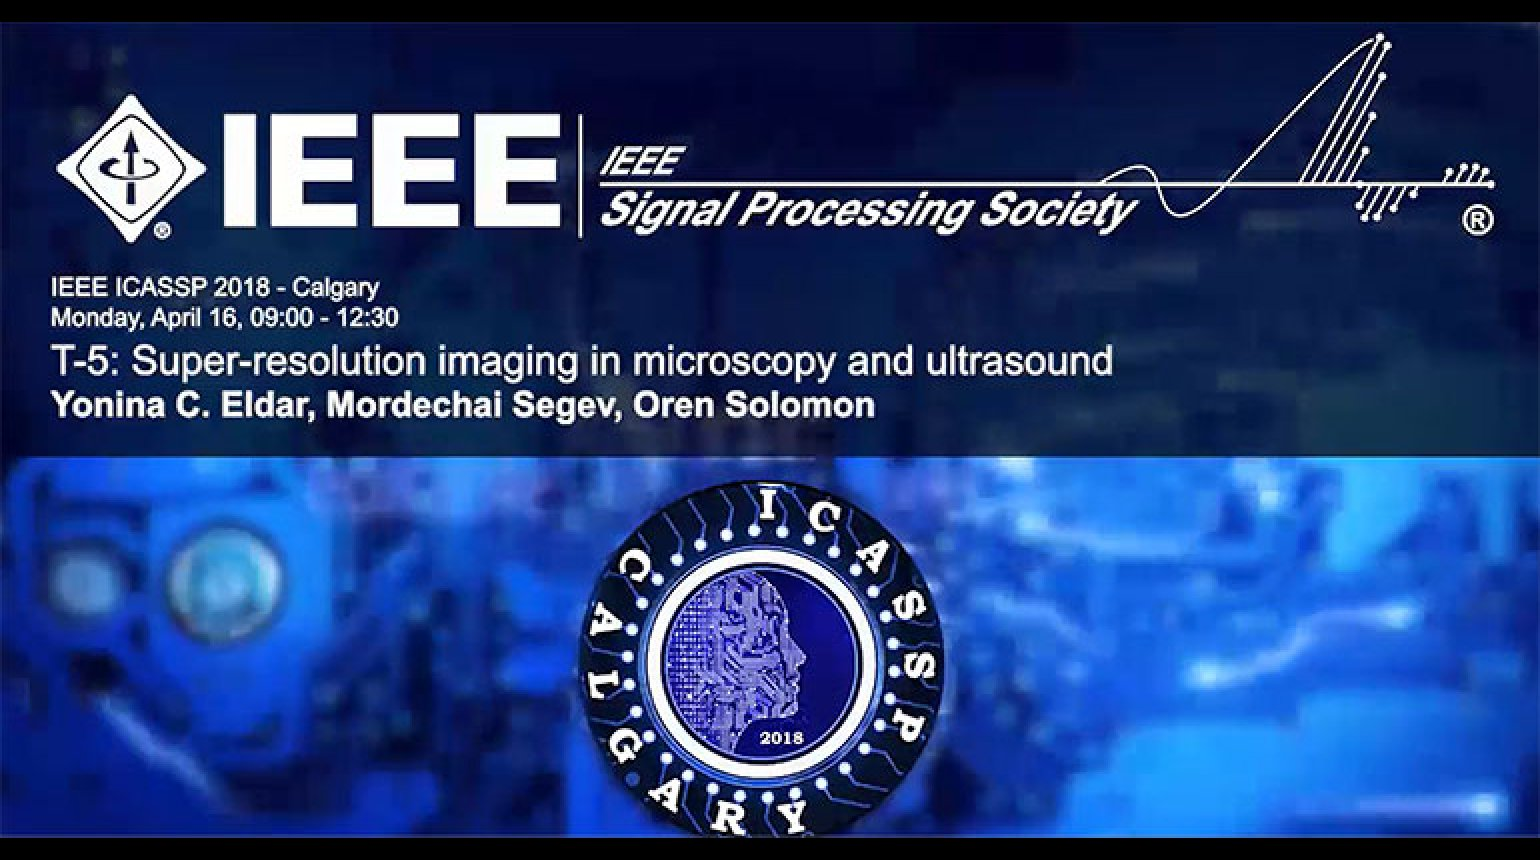 Tutorial 5 - Super-Resolution Imaging in Microscopy and Ultrasound